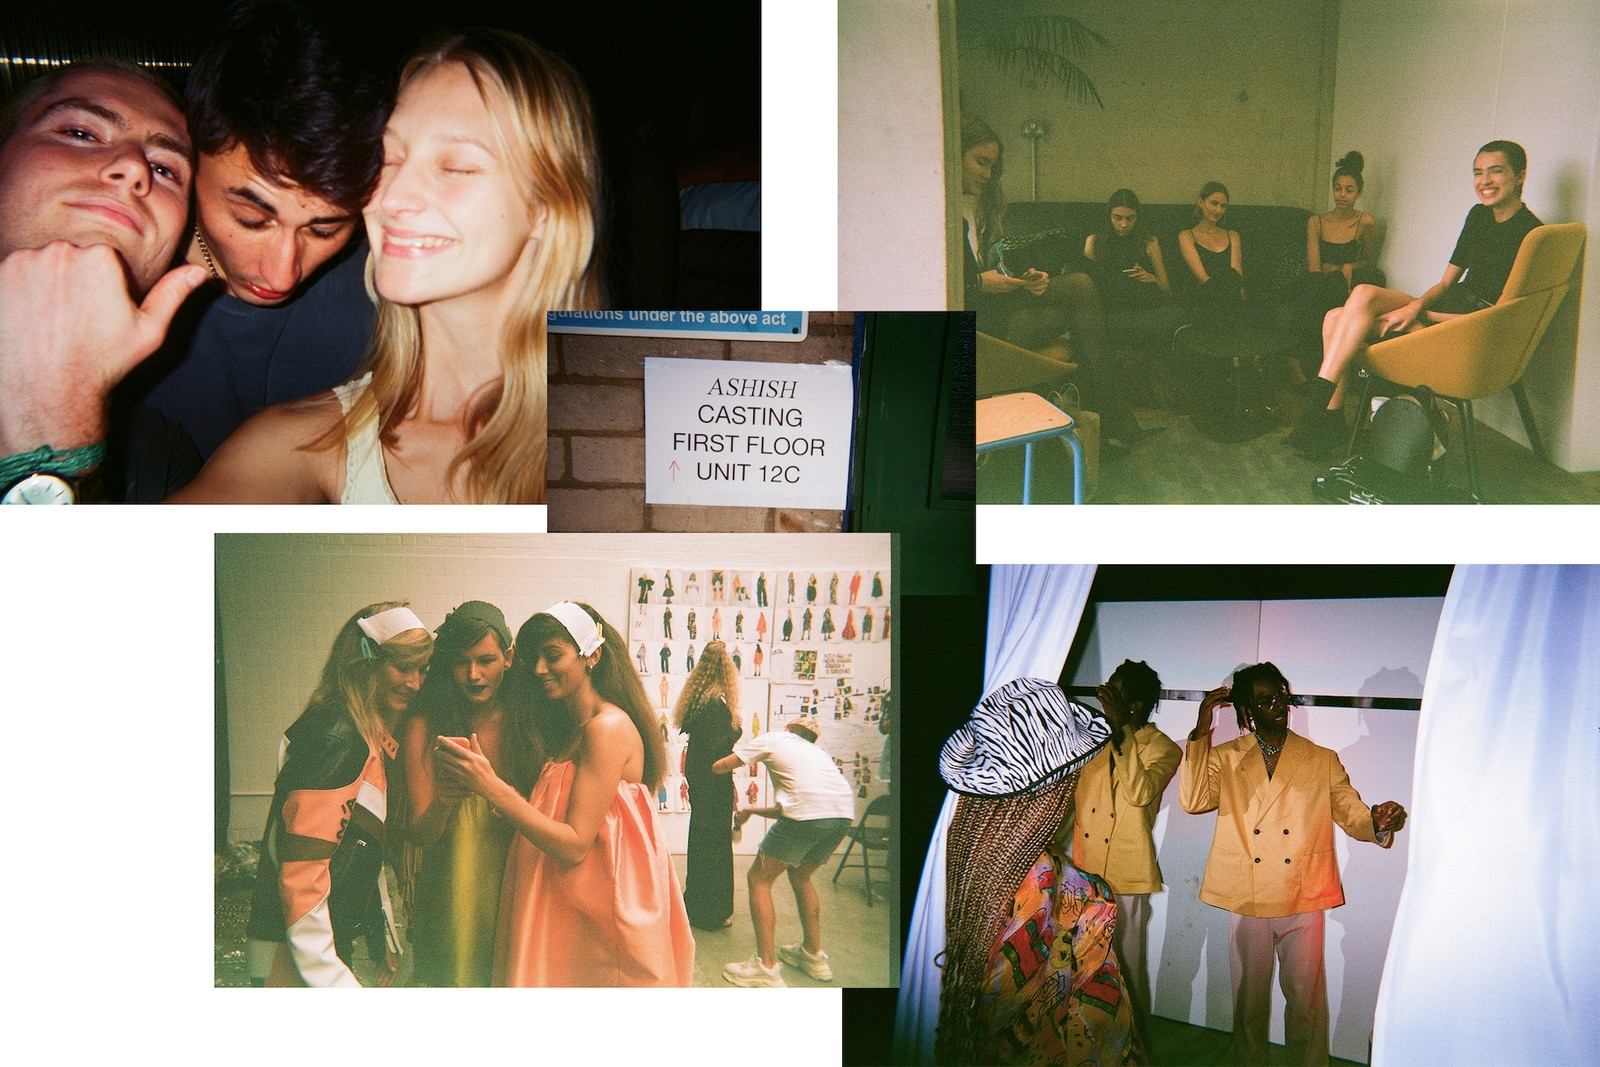 London Fashion Week SS20 Model Photo Diaries Bee Beardsworth Laura Chova Iris Law Gullyguyleo Events Parties A Day in The Life